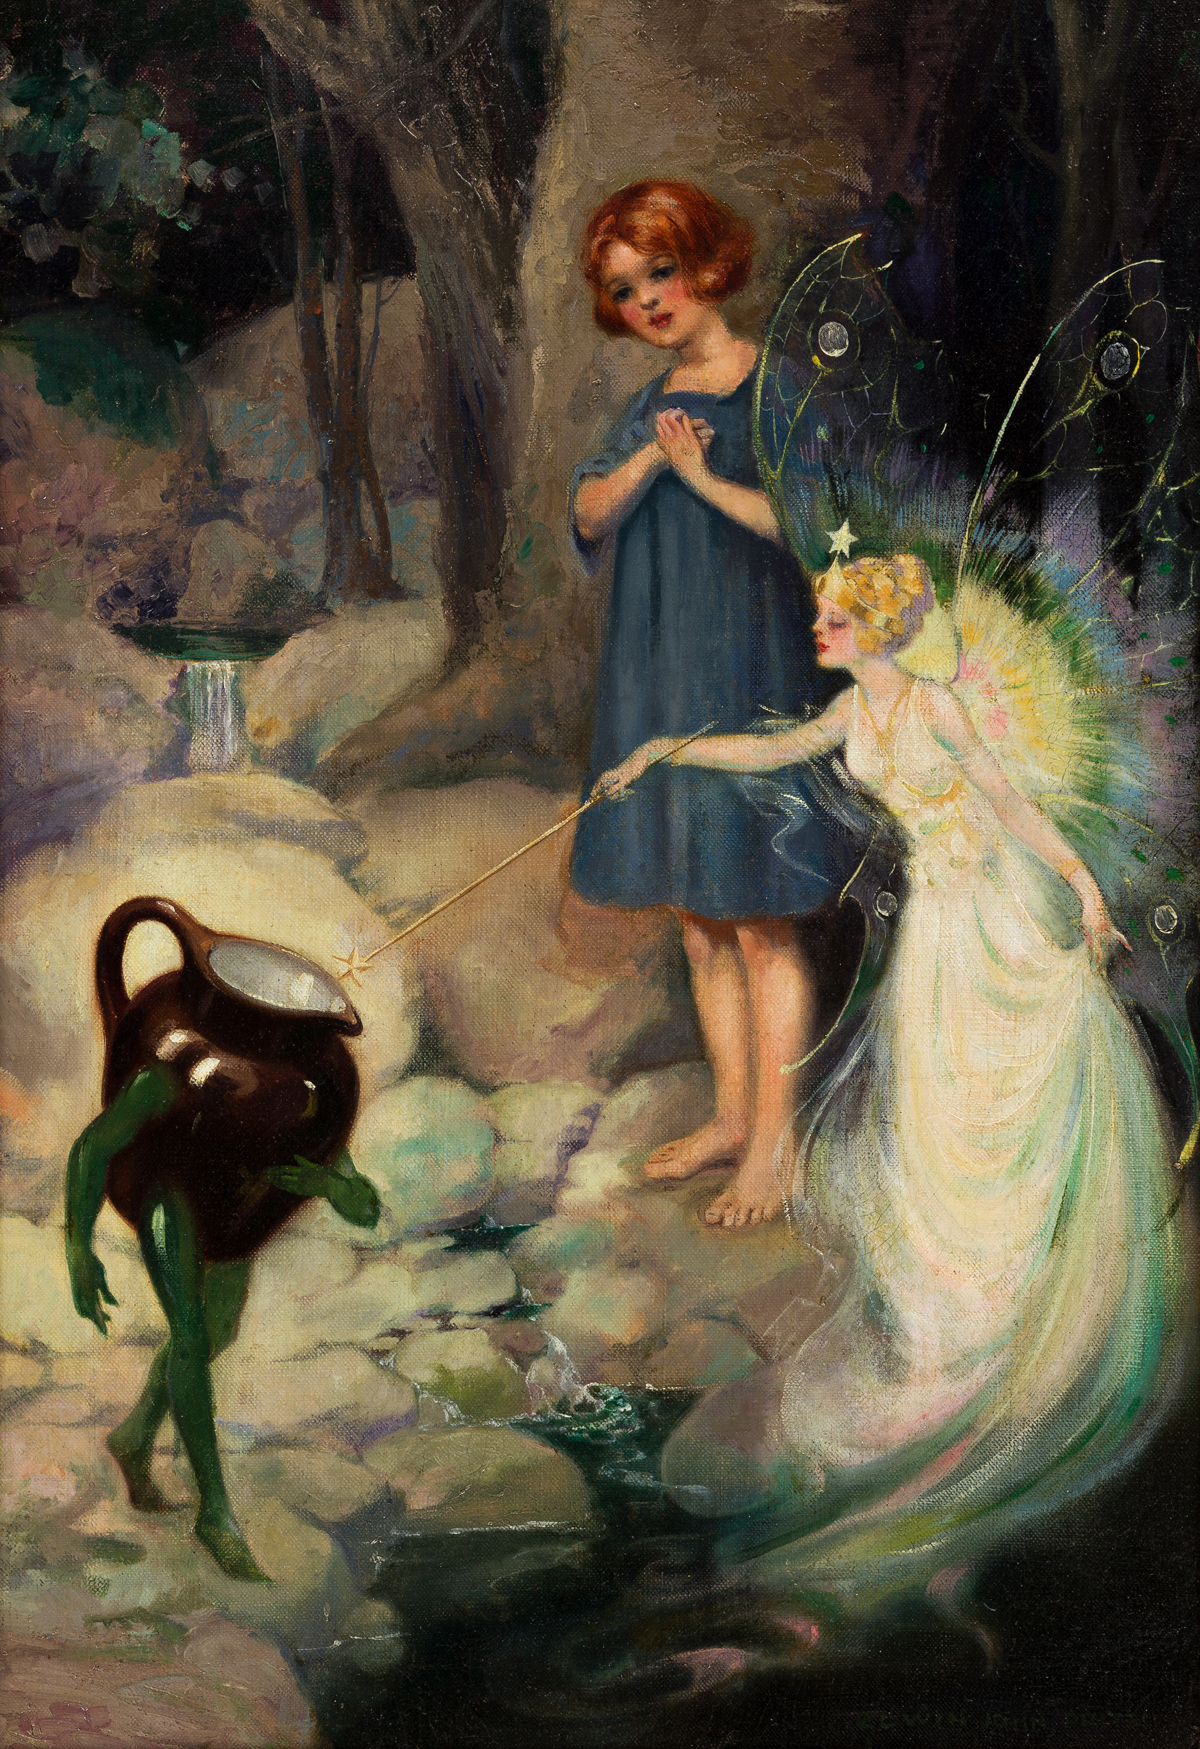 EDWIN JOHN PRITTIE (1879-1963) She then touched the pitcher with her wand. [CHILDRENS]